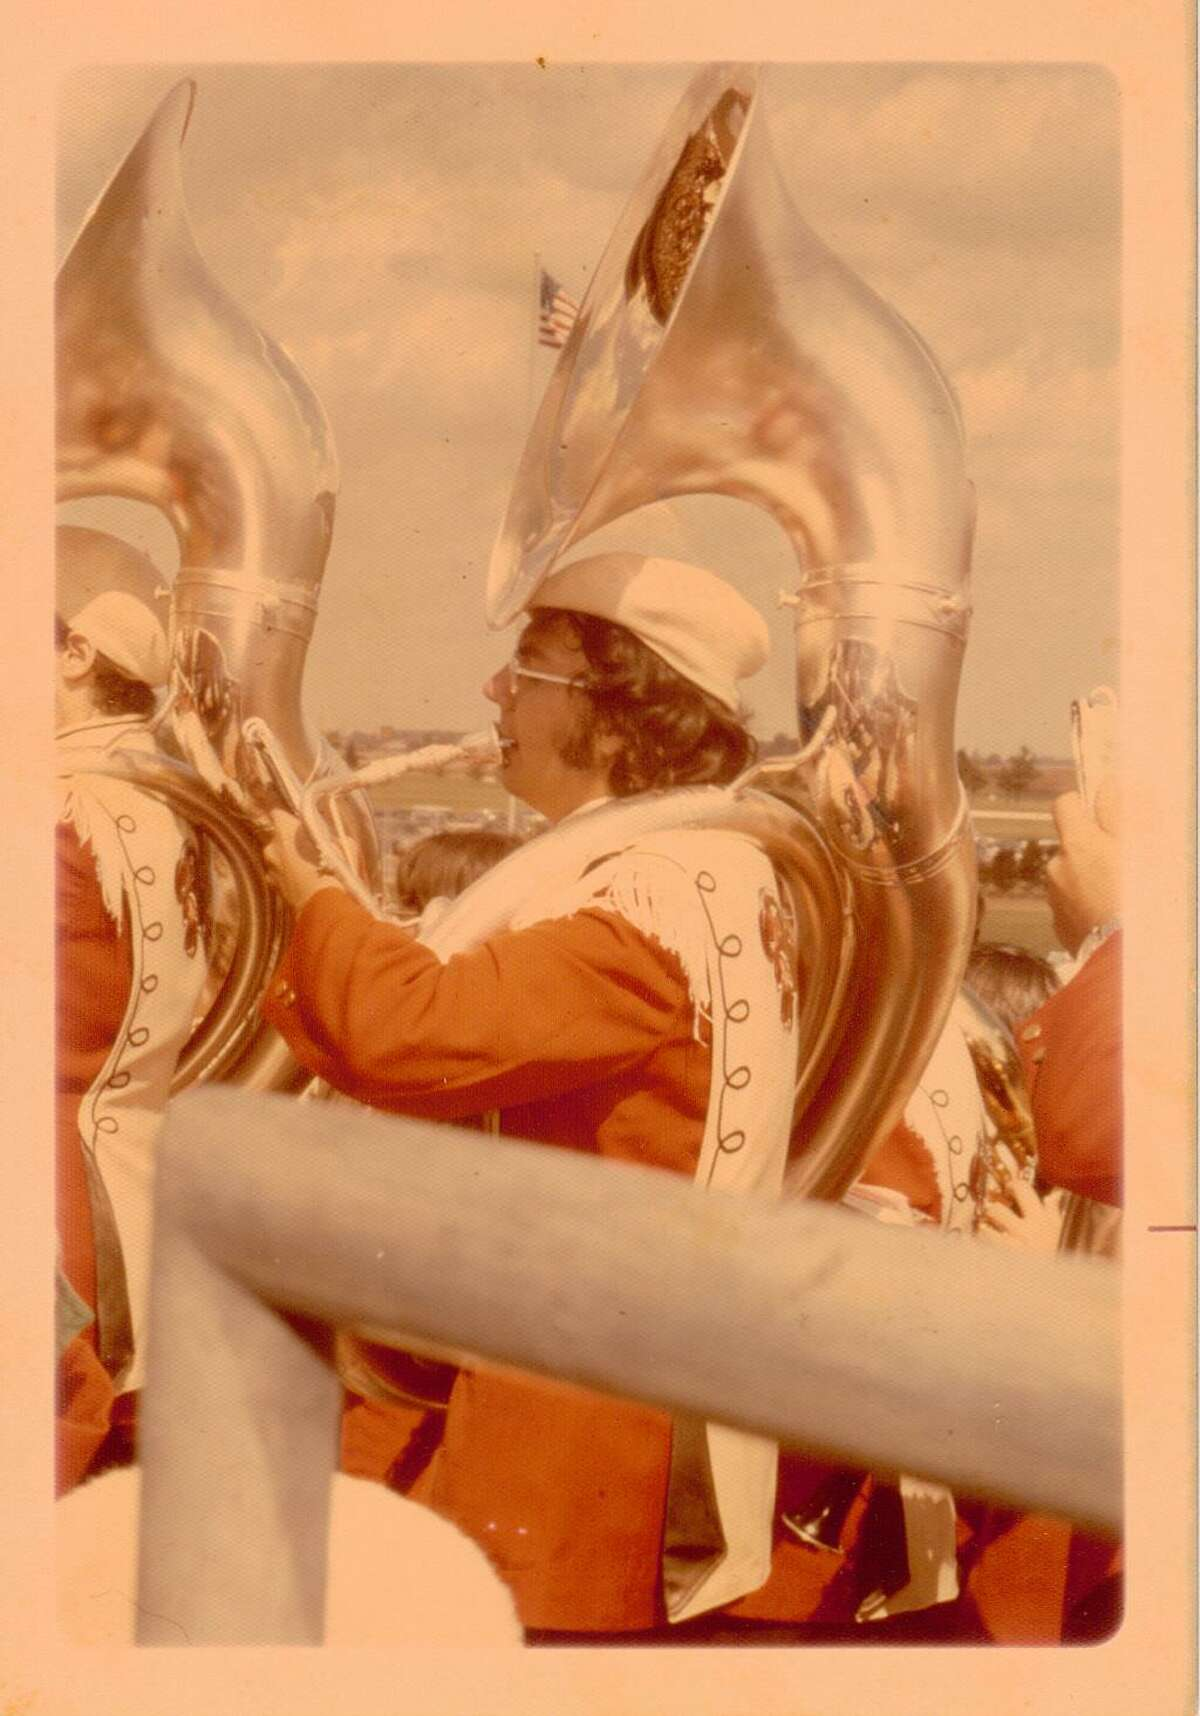 1. Yes, I do play the tuba! Underrated and unappreciated instrument! I started when I was 12, was in my high school and college marching bands, and still play in the Memorial Concert Band of Colonie! I've also taken part in quite a few